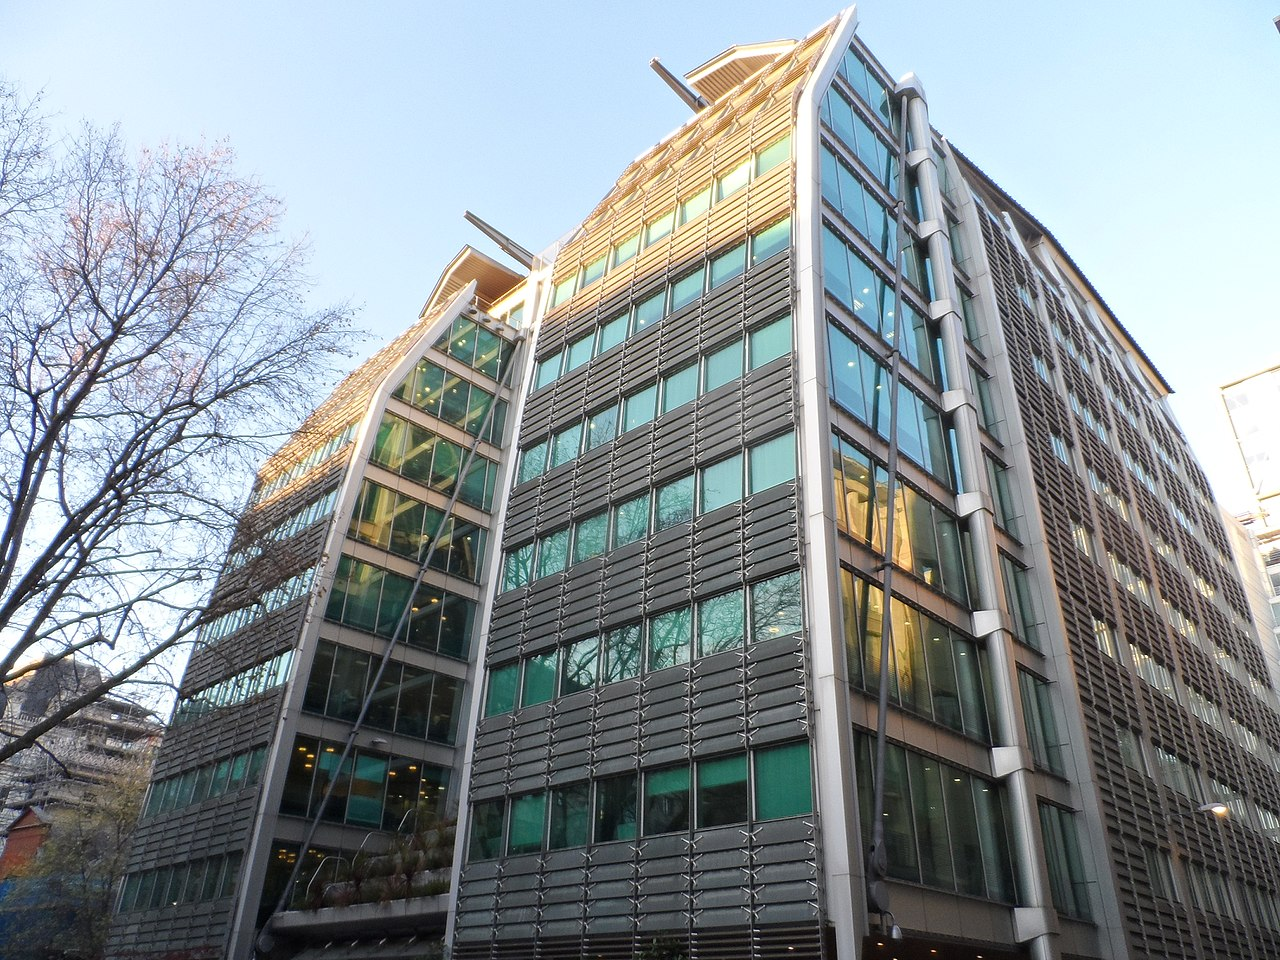 Lloyds to buy investment and retirement business Embark for £390m